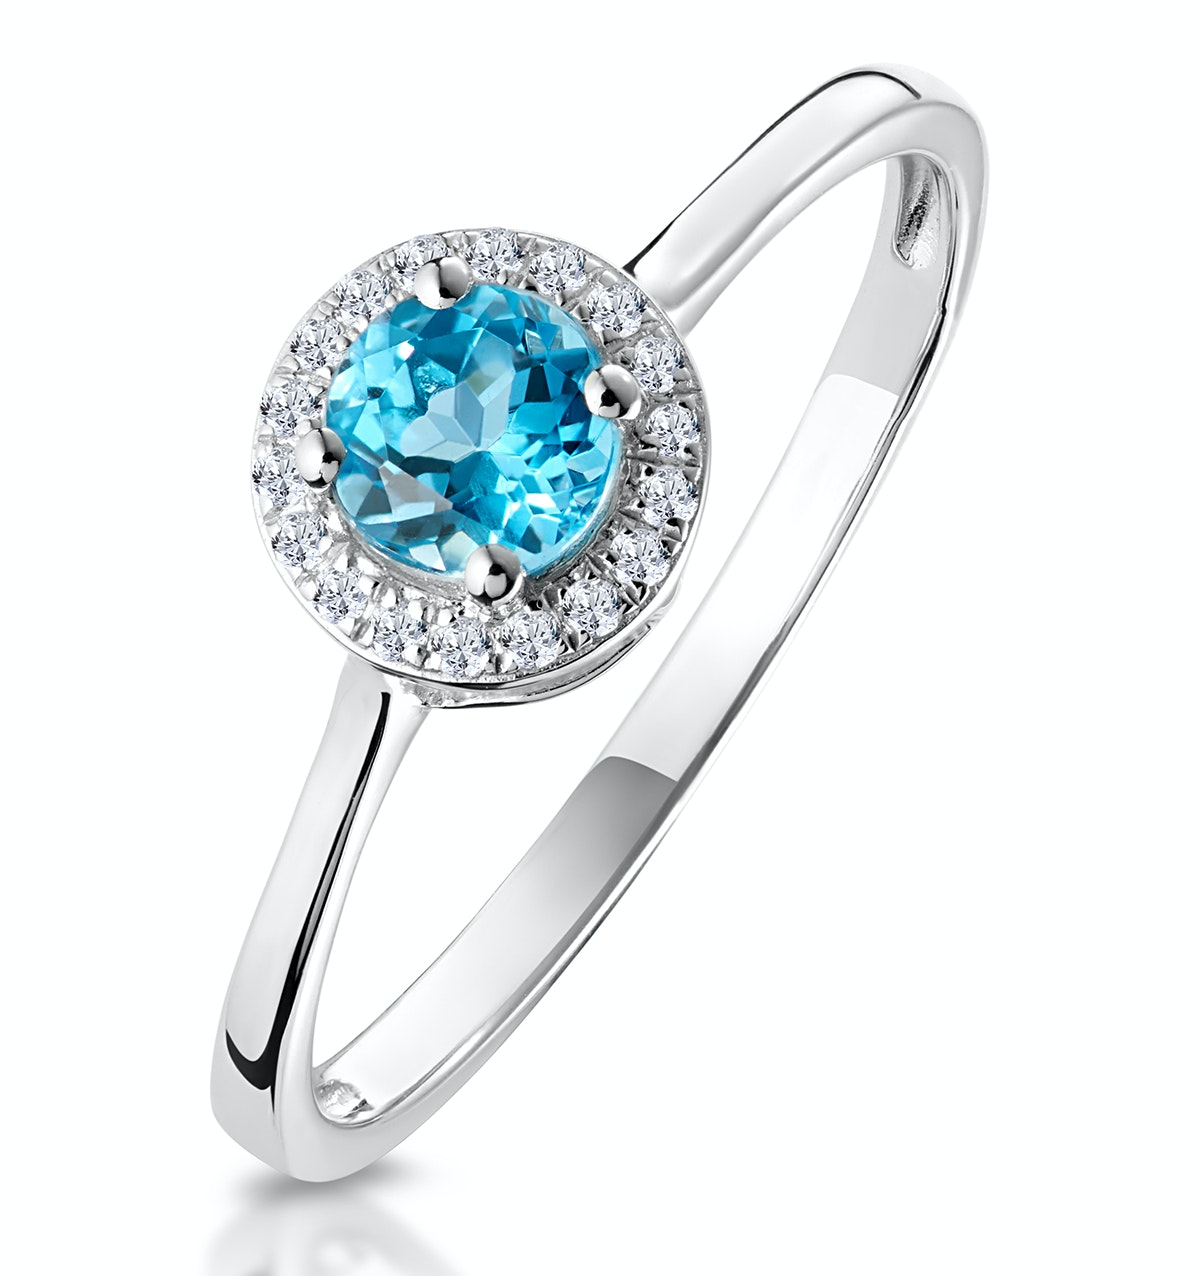 0.42ct Swiss Blue Topaz and Stellato Diamond Ring in 9K White Gold